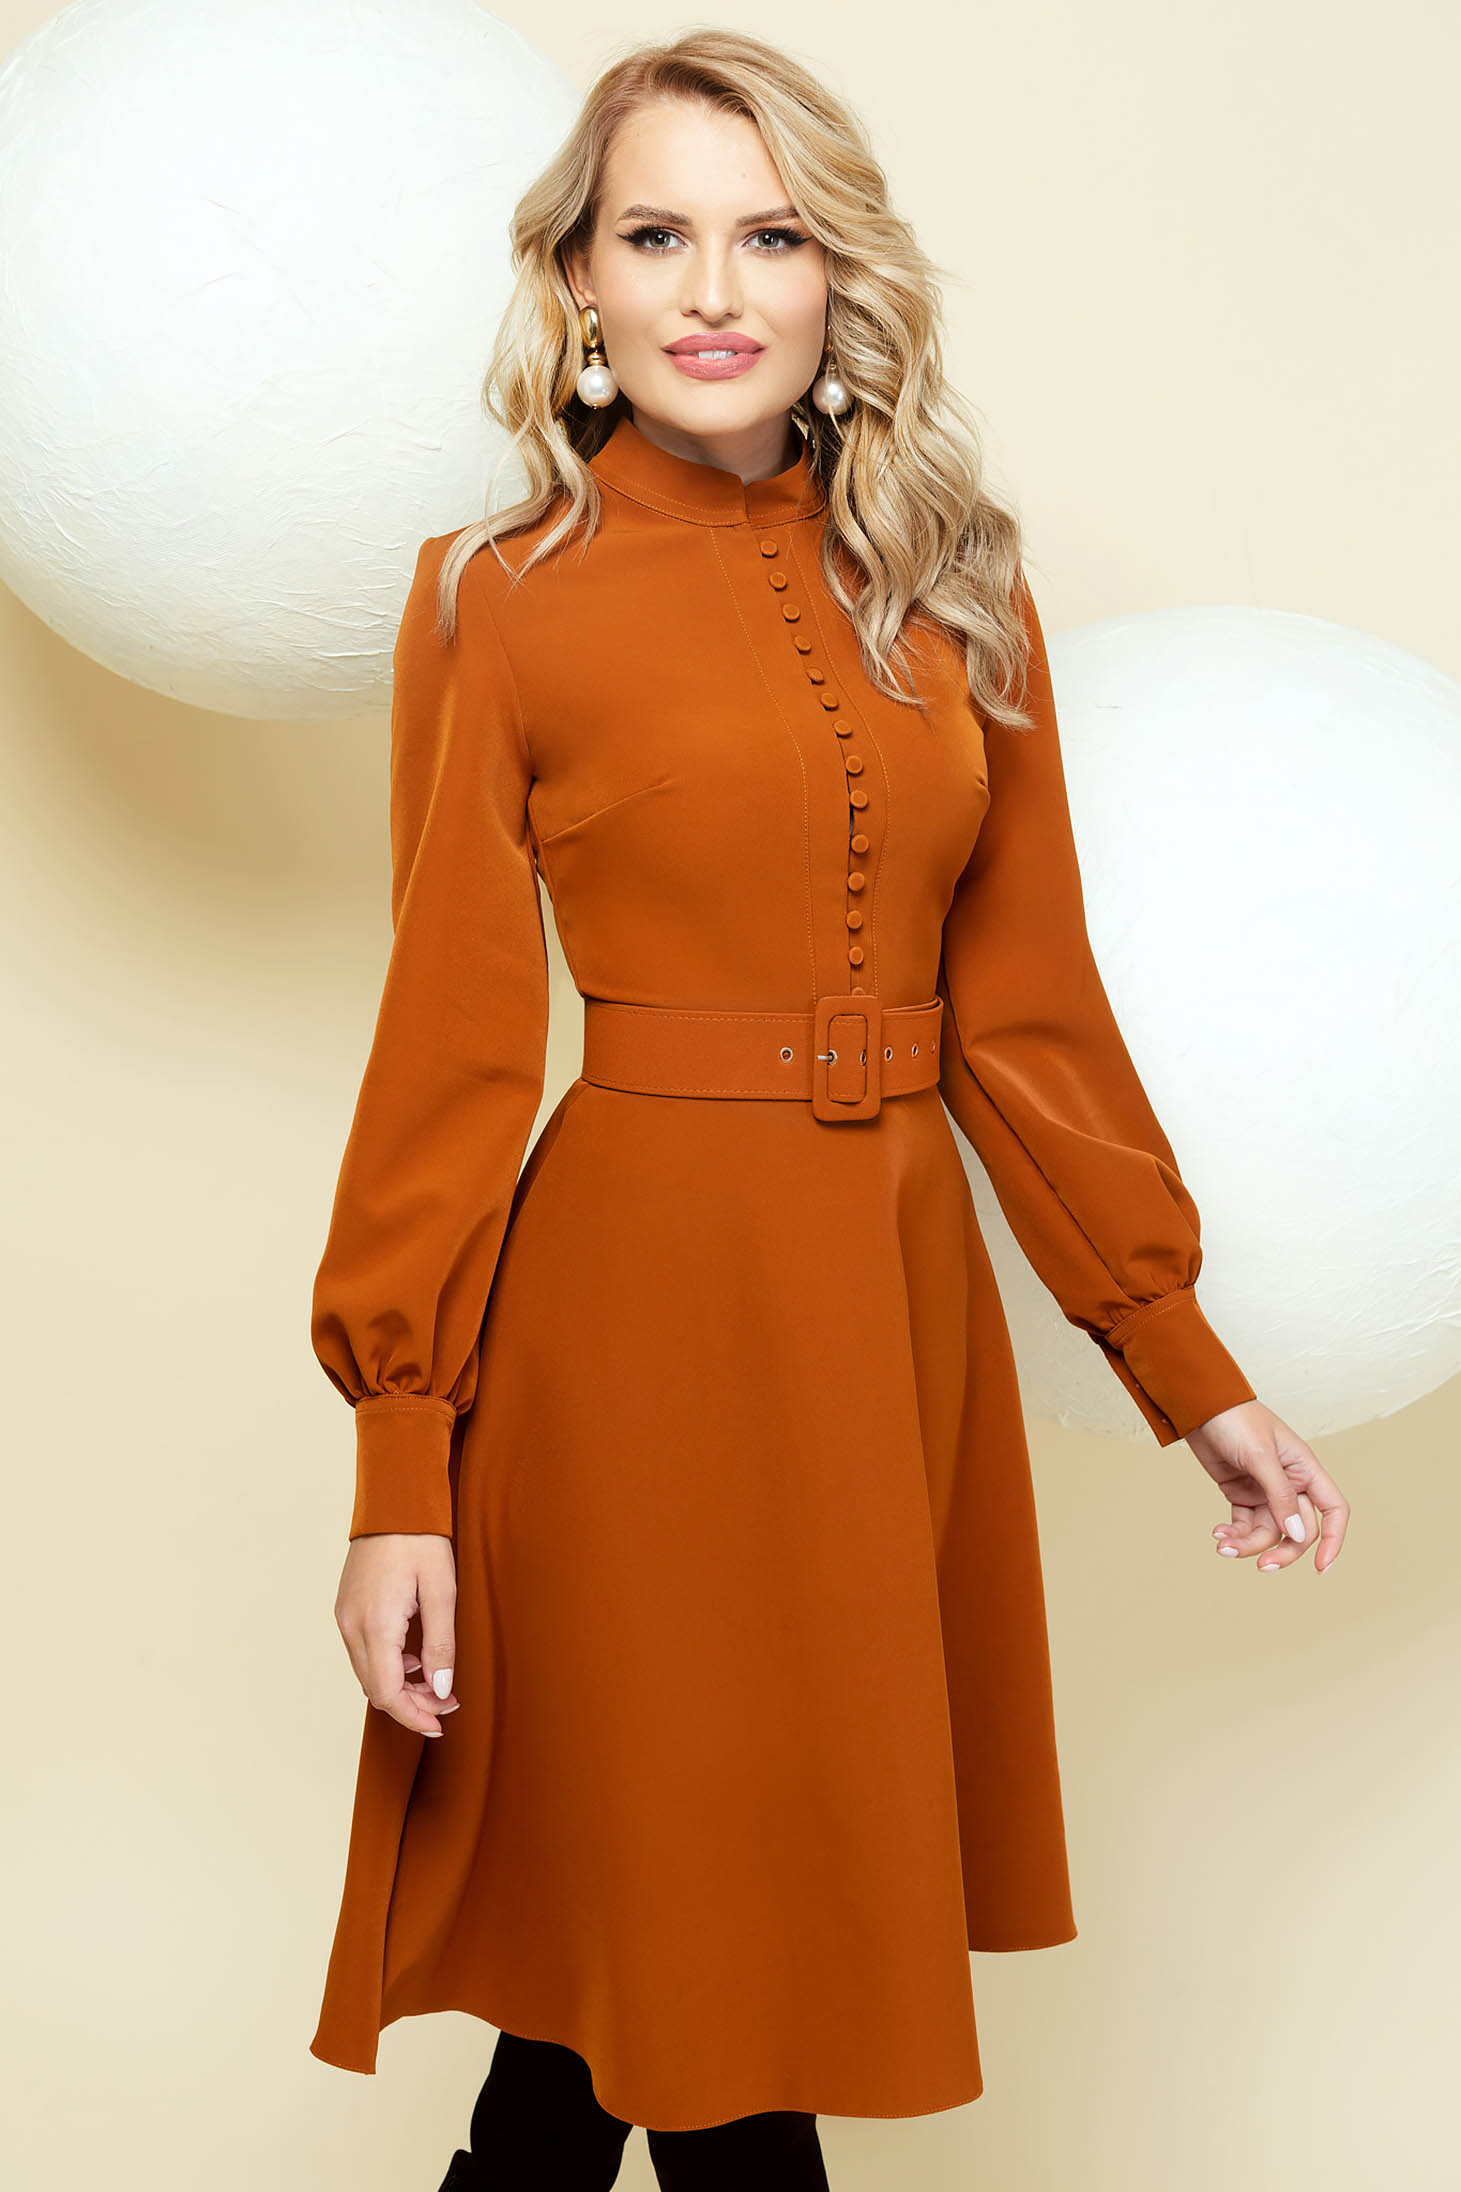 Elegant bricky cloche dress with puffed sleeves accessorized with belt